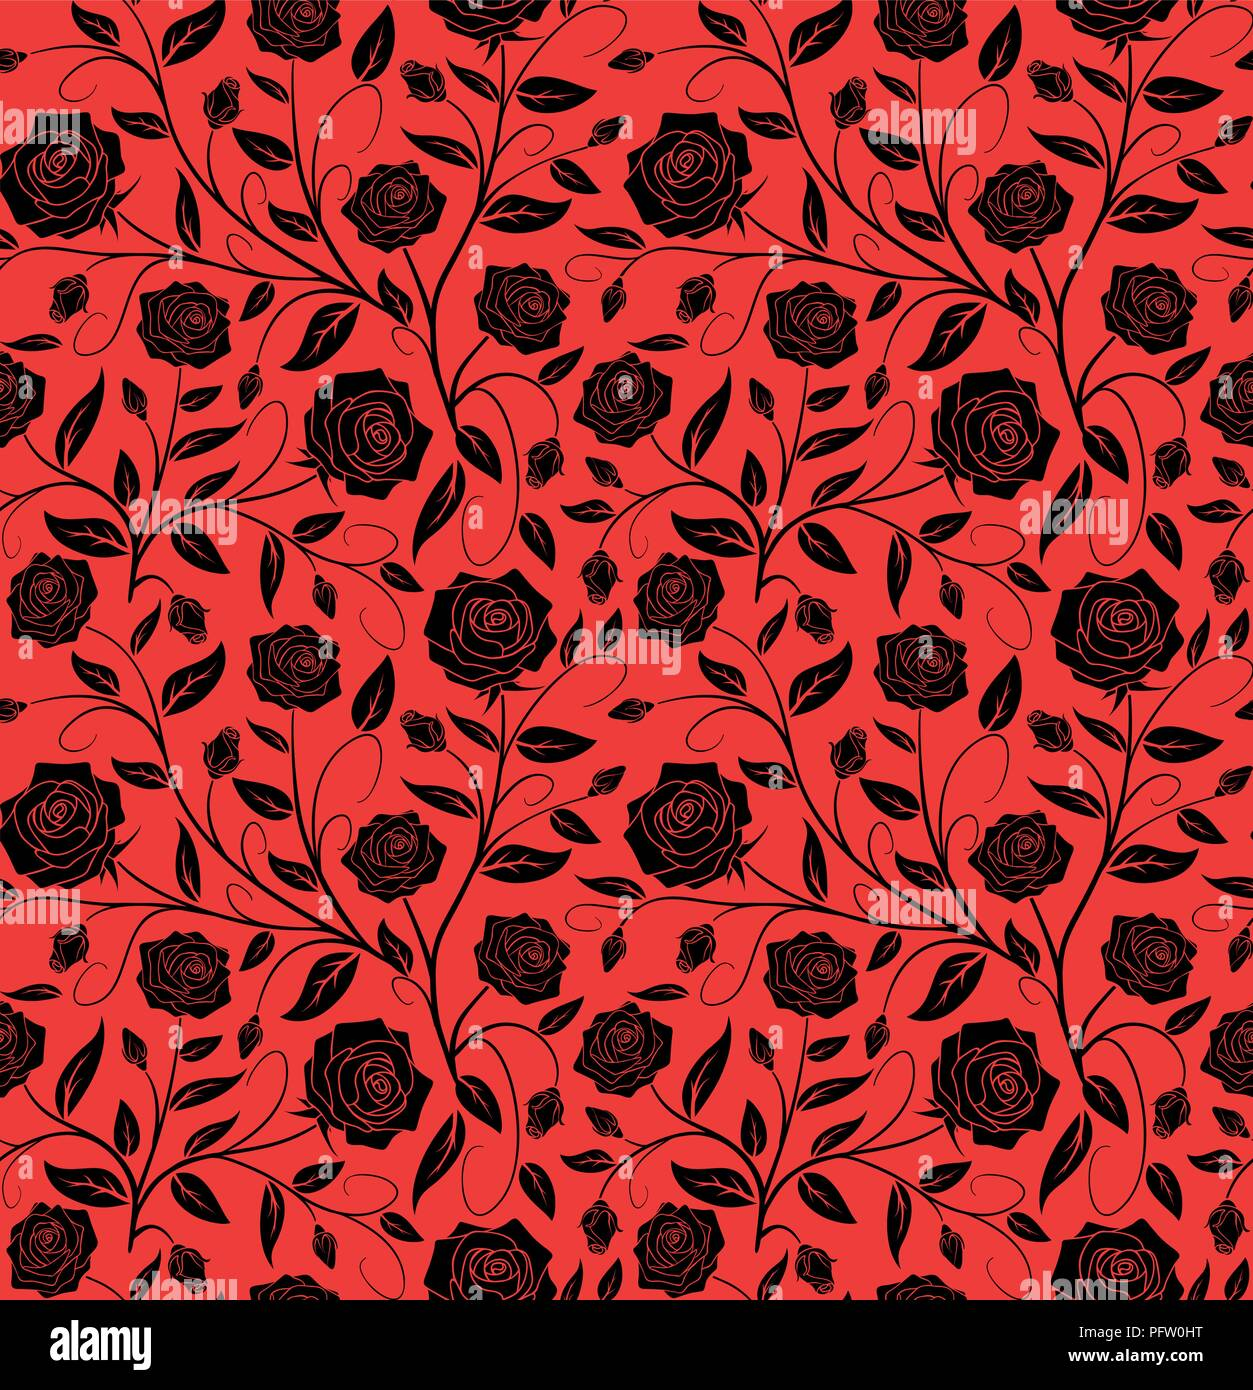 Vector Seamless Floral Pattern Design Hand Drawn Black Roses With